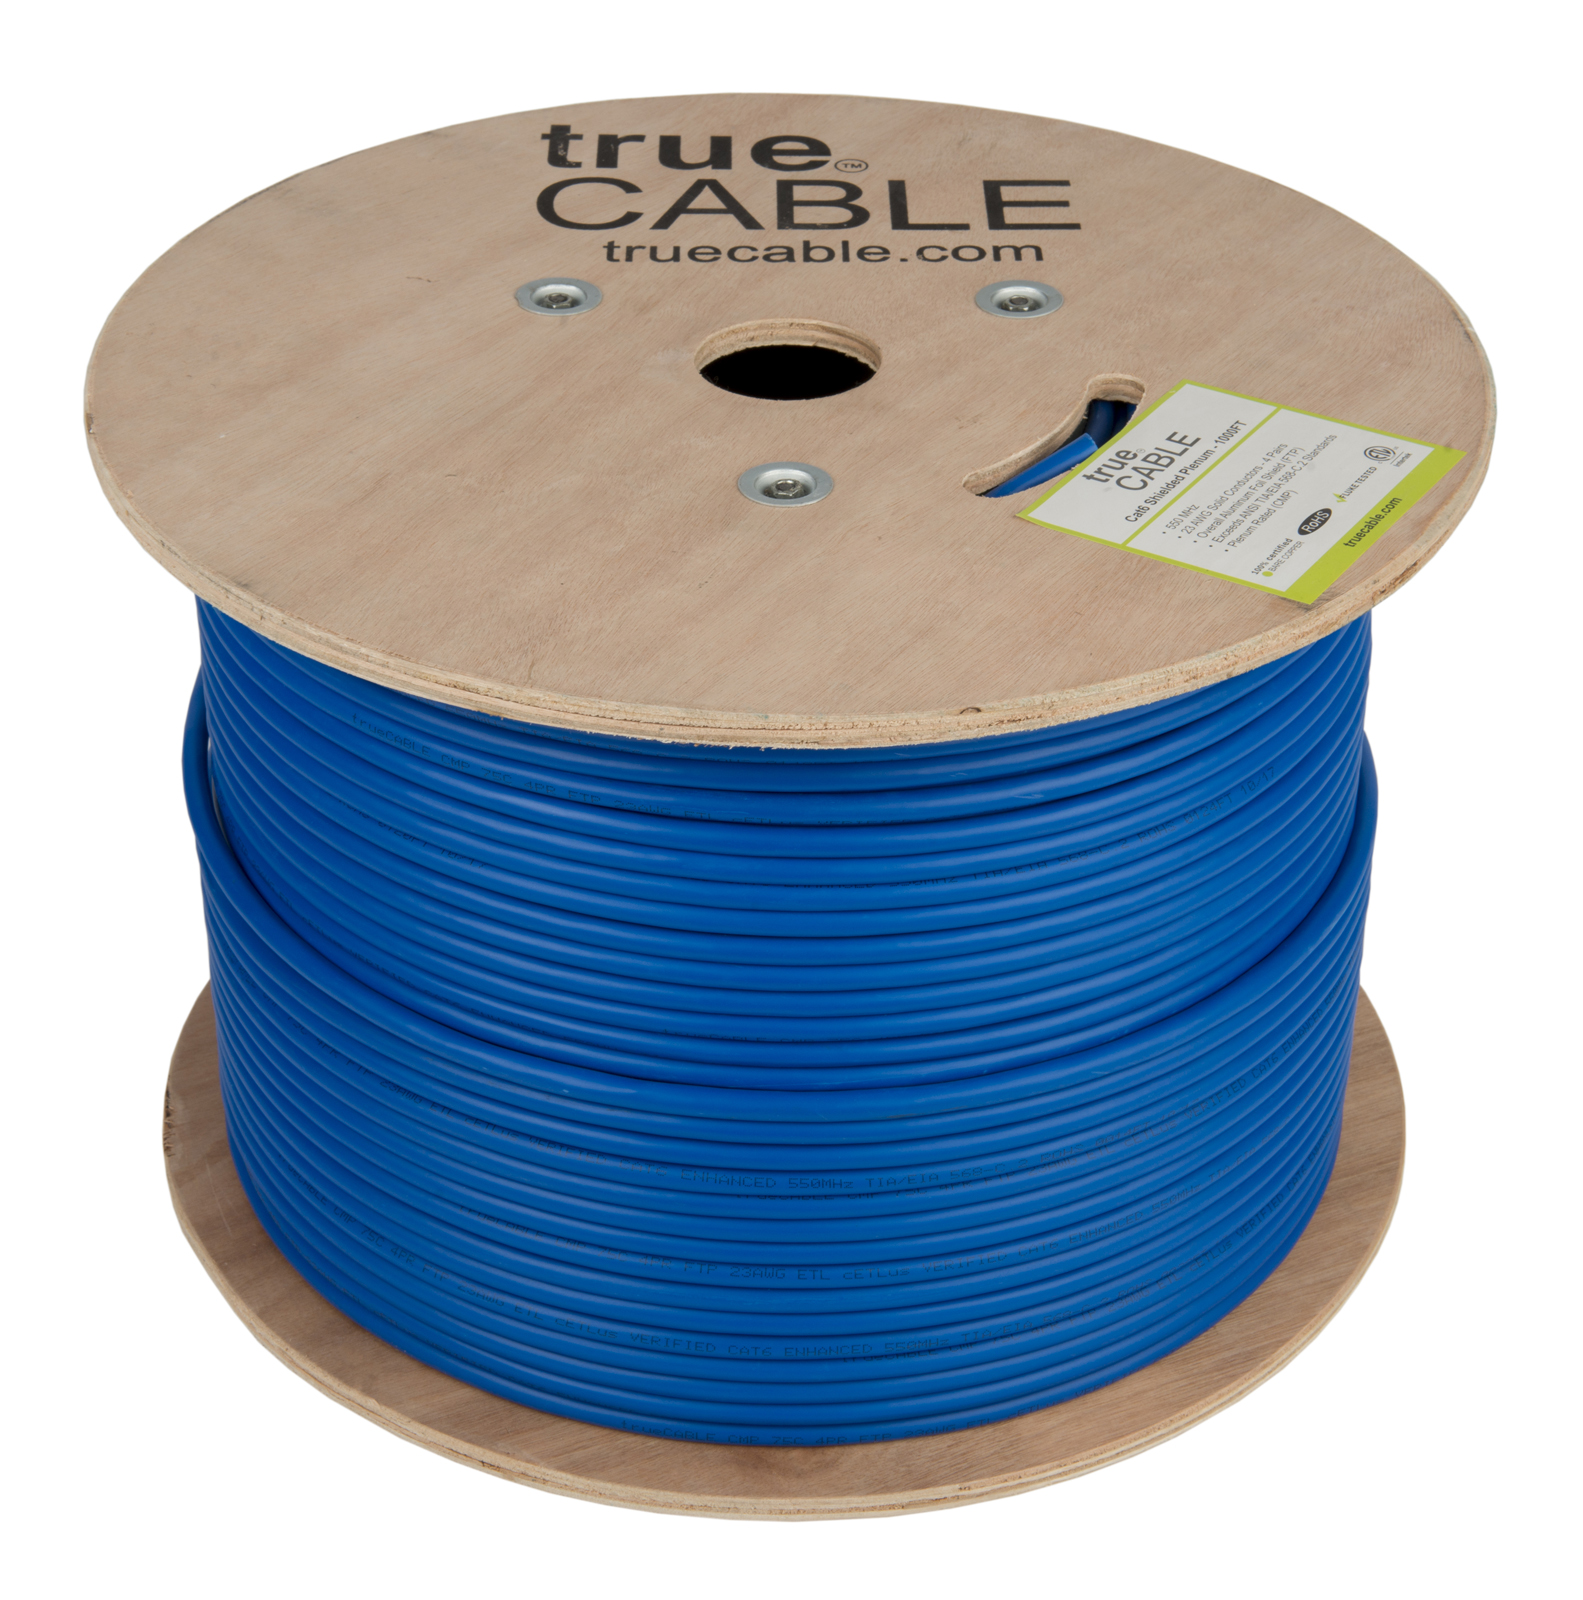 True Cable blue cable reel photographed by Robintek Photography